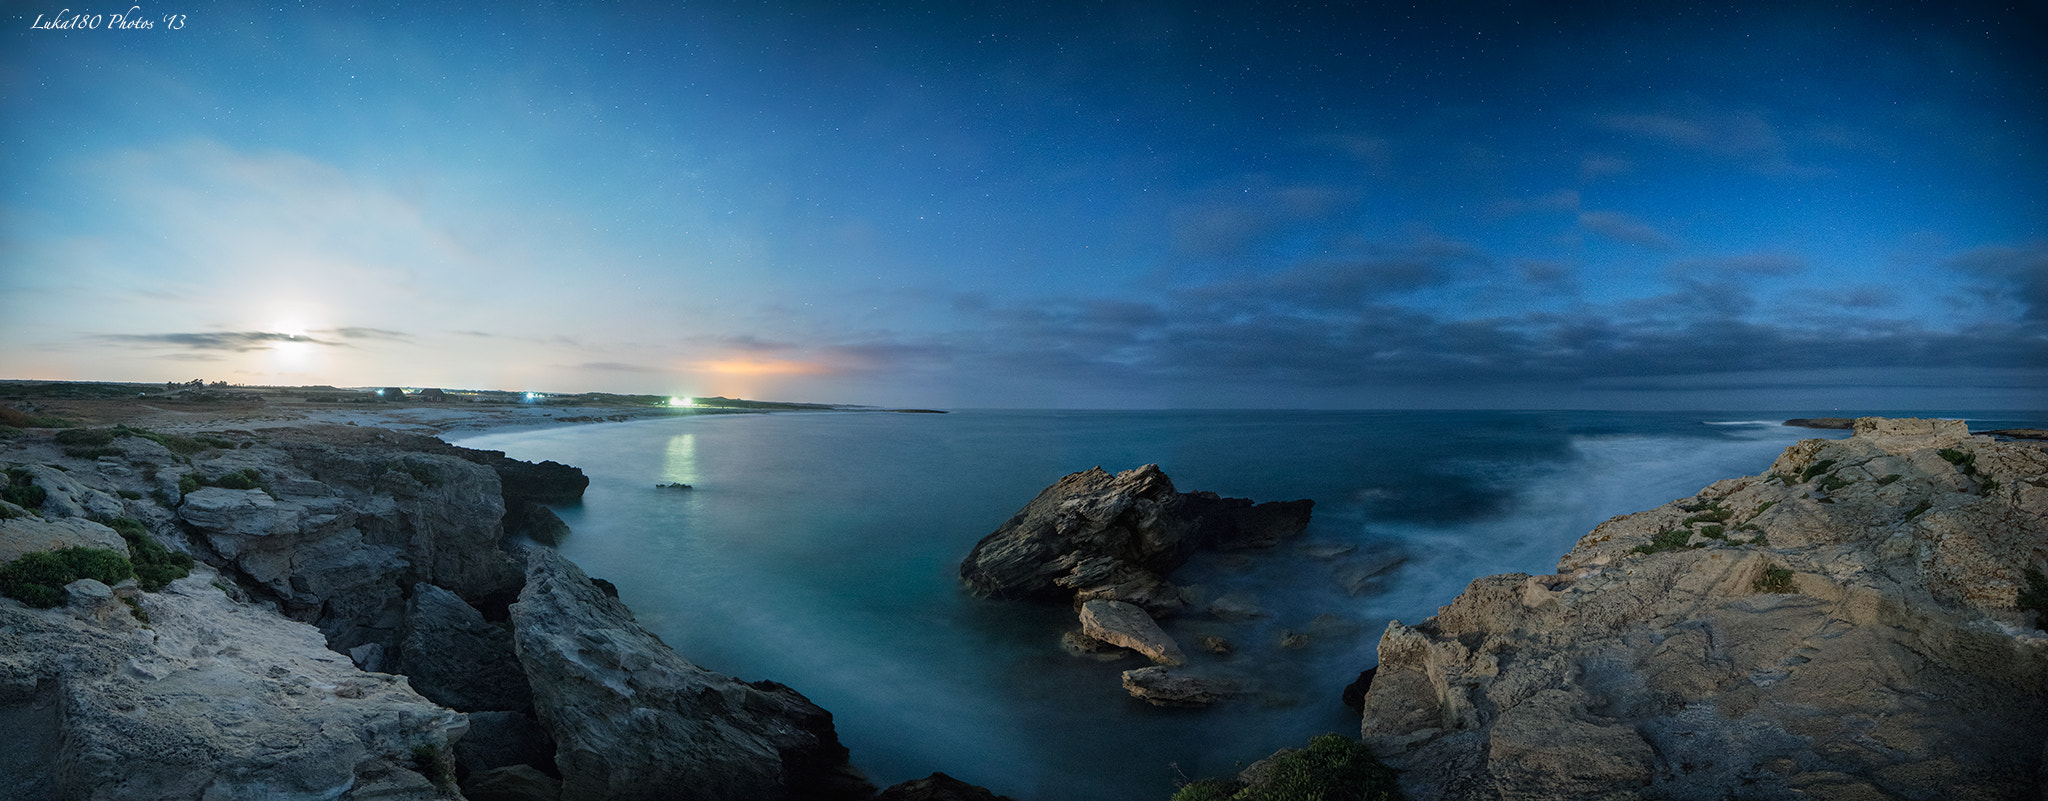 Photograph Panorama @Is Arutas by Luka180 S. on 500px